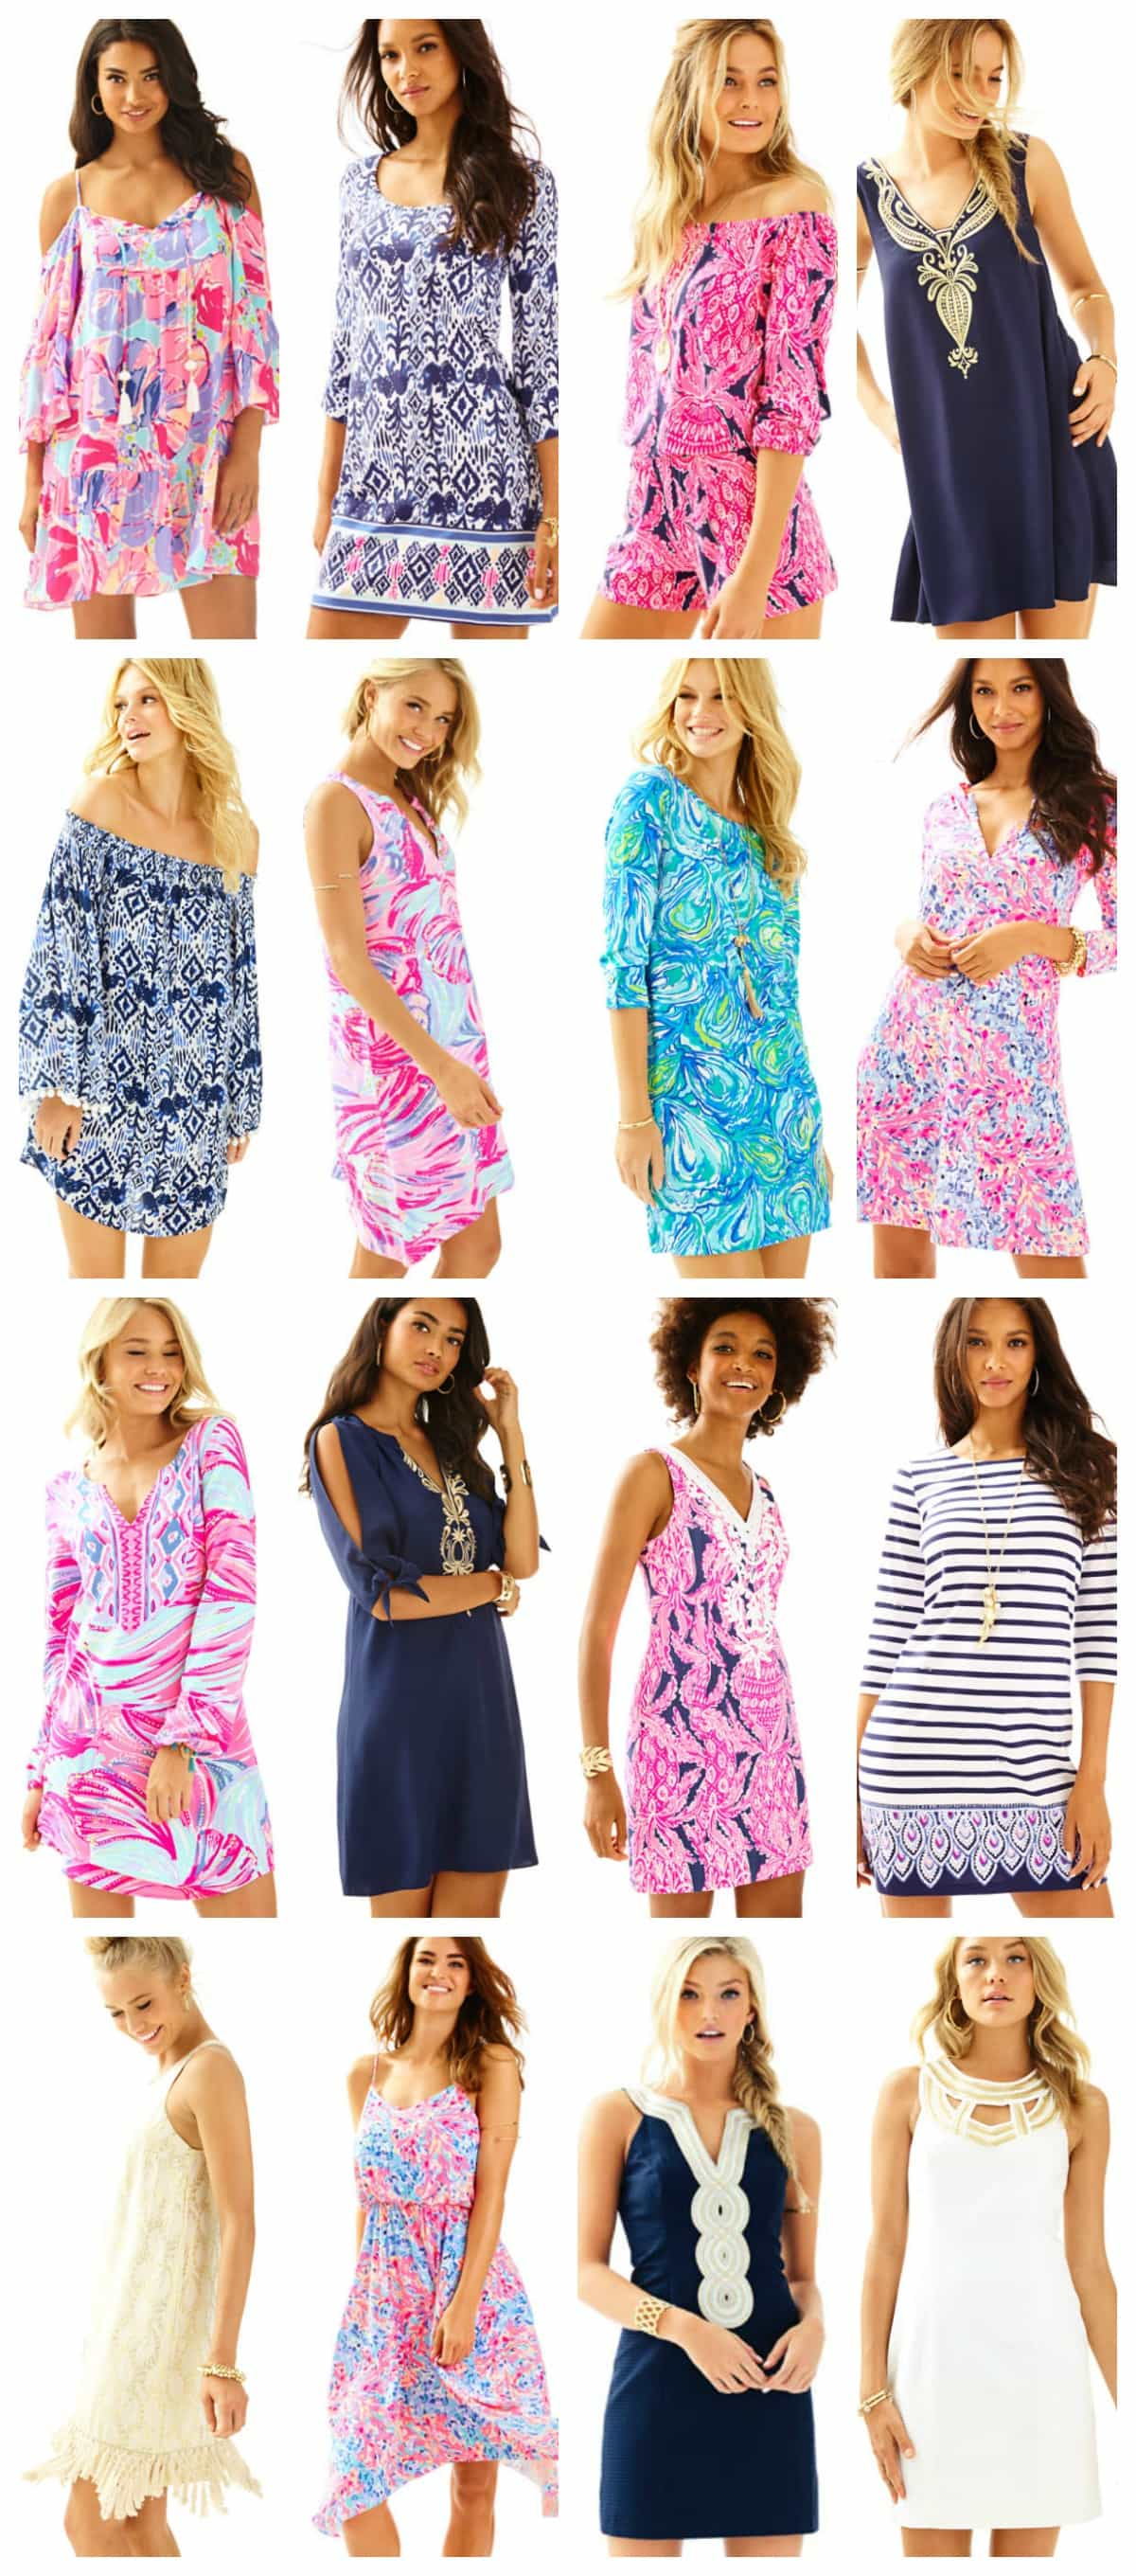 Lilly Pulitzer Fall Collection + Gifts with Purchase